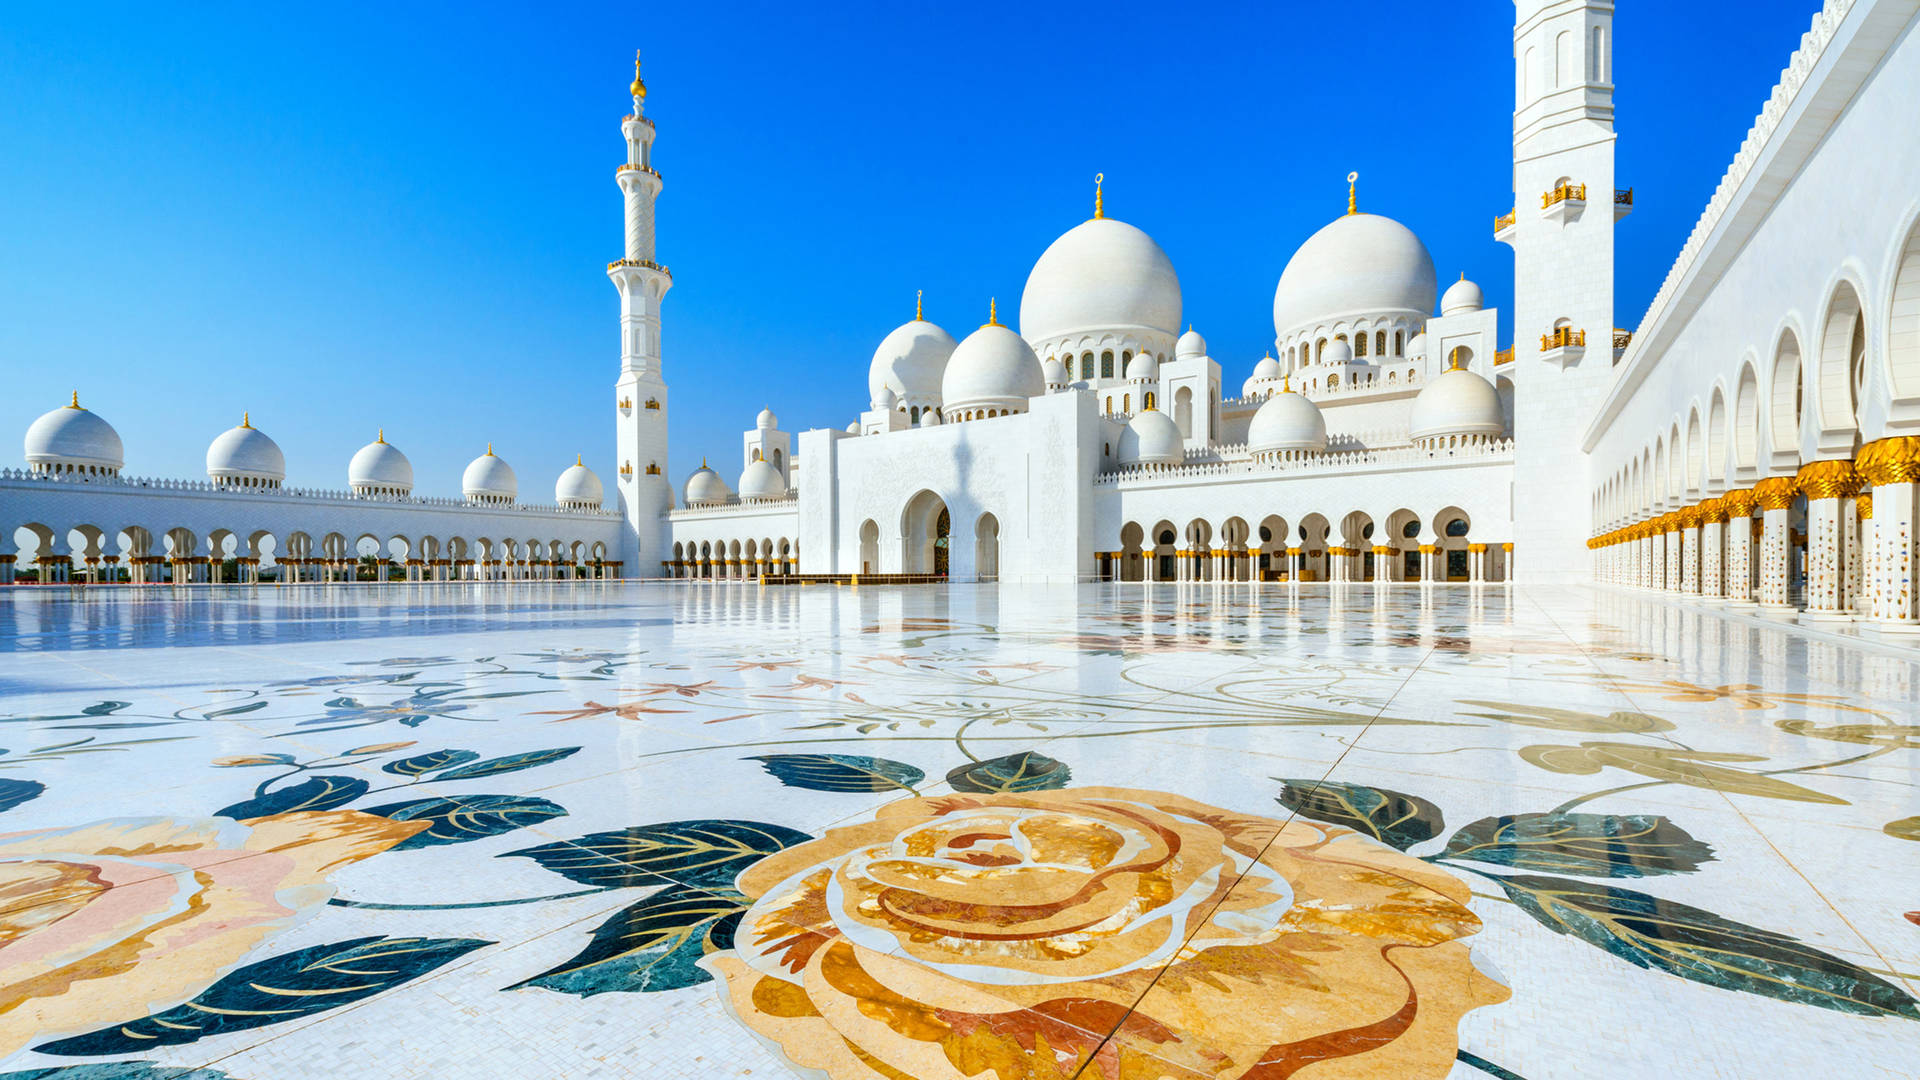 View of the Grand Mosque in Abu Dhabi